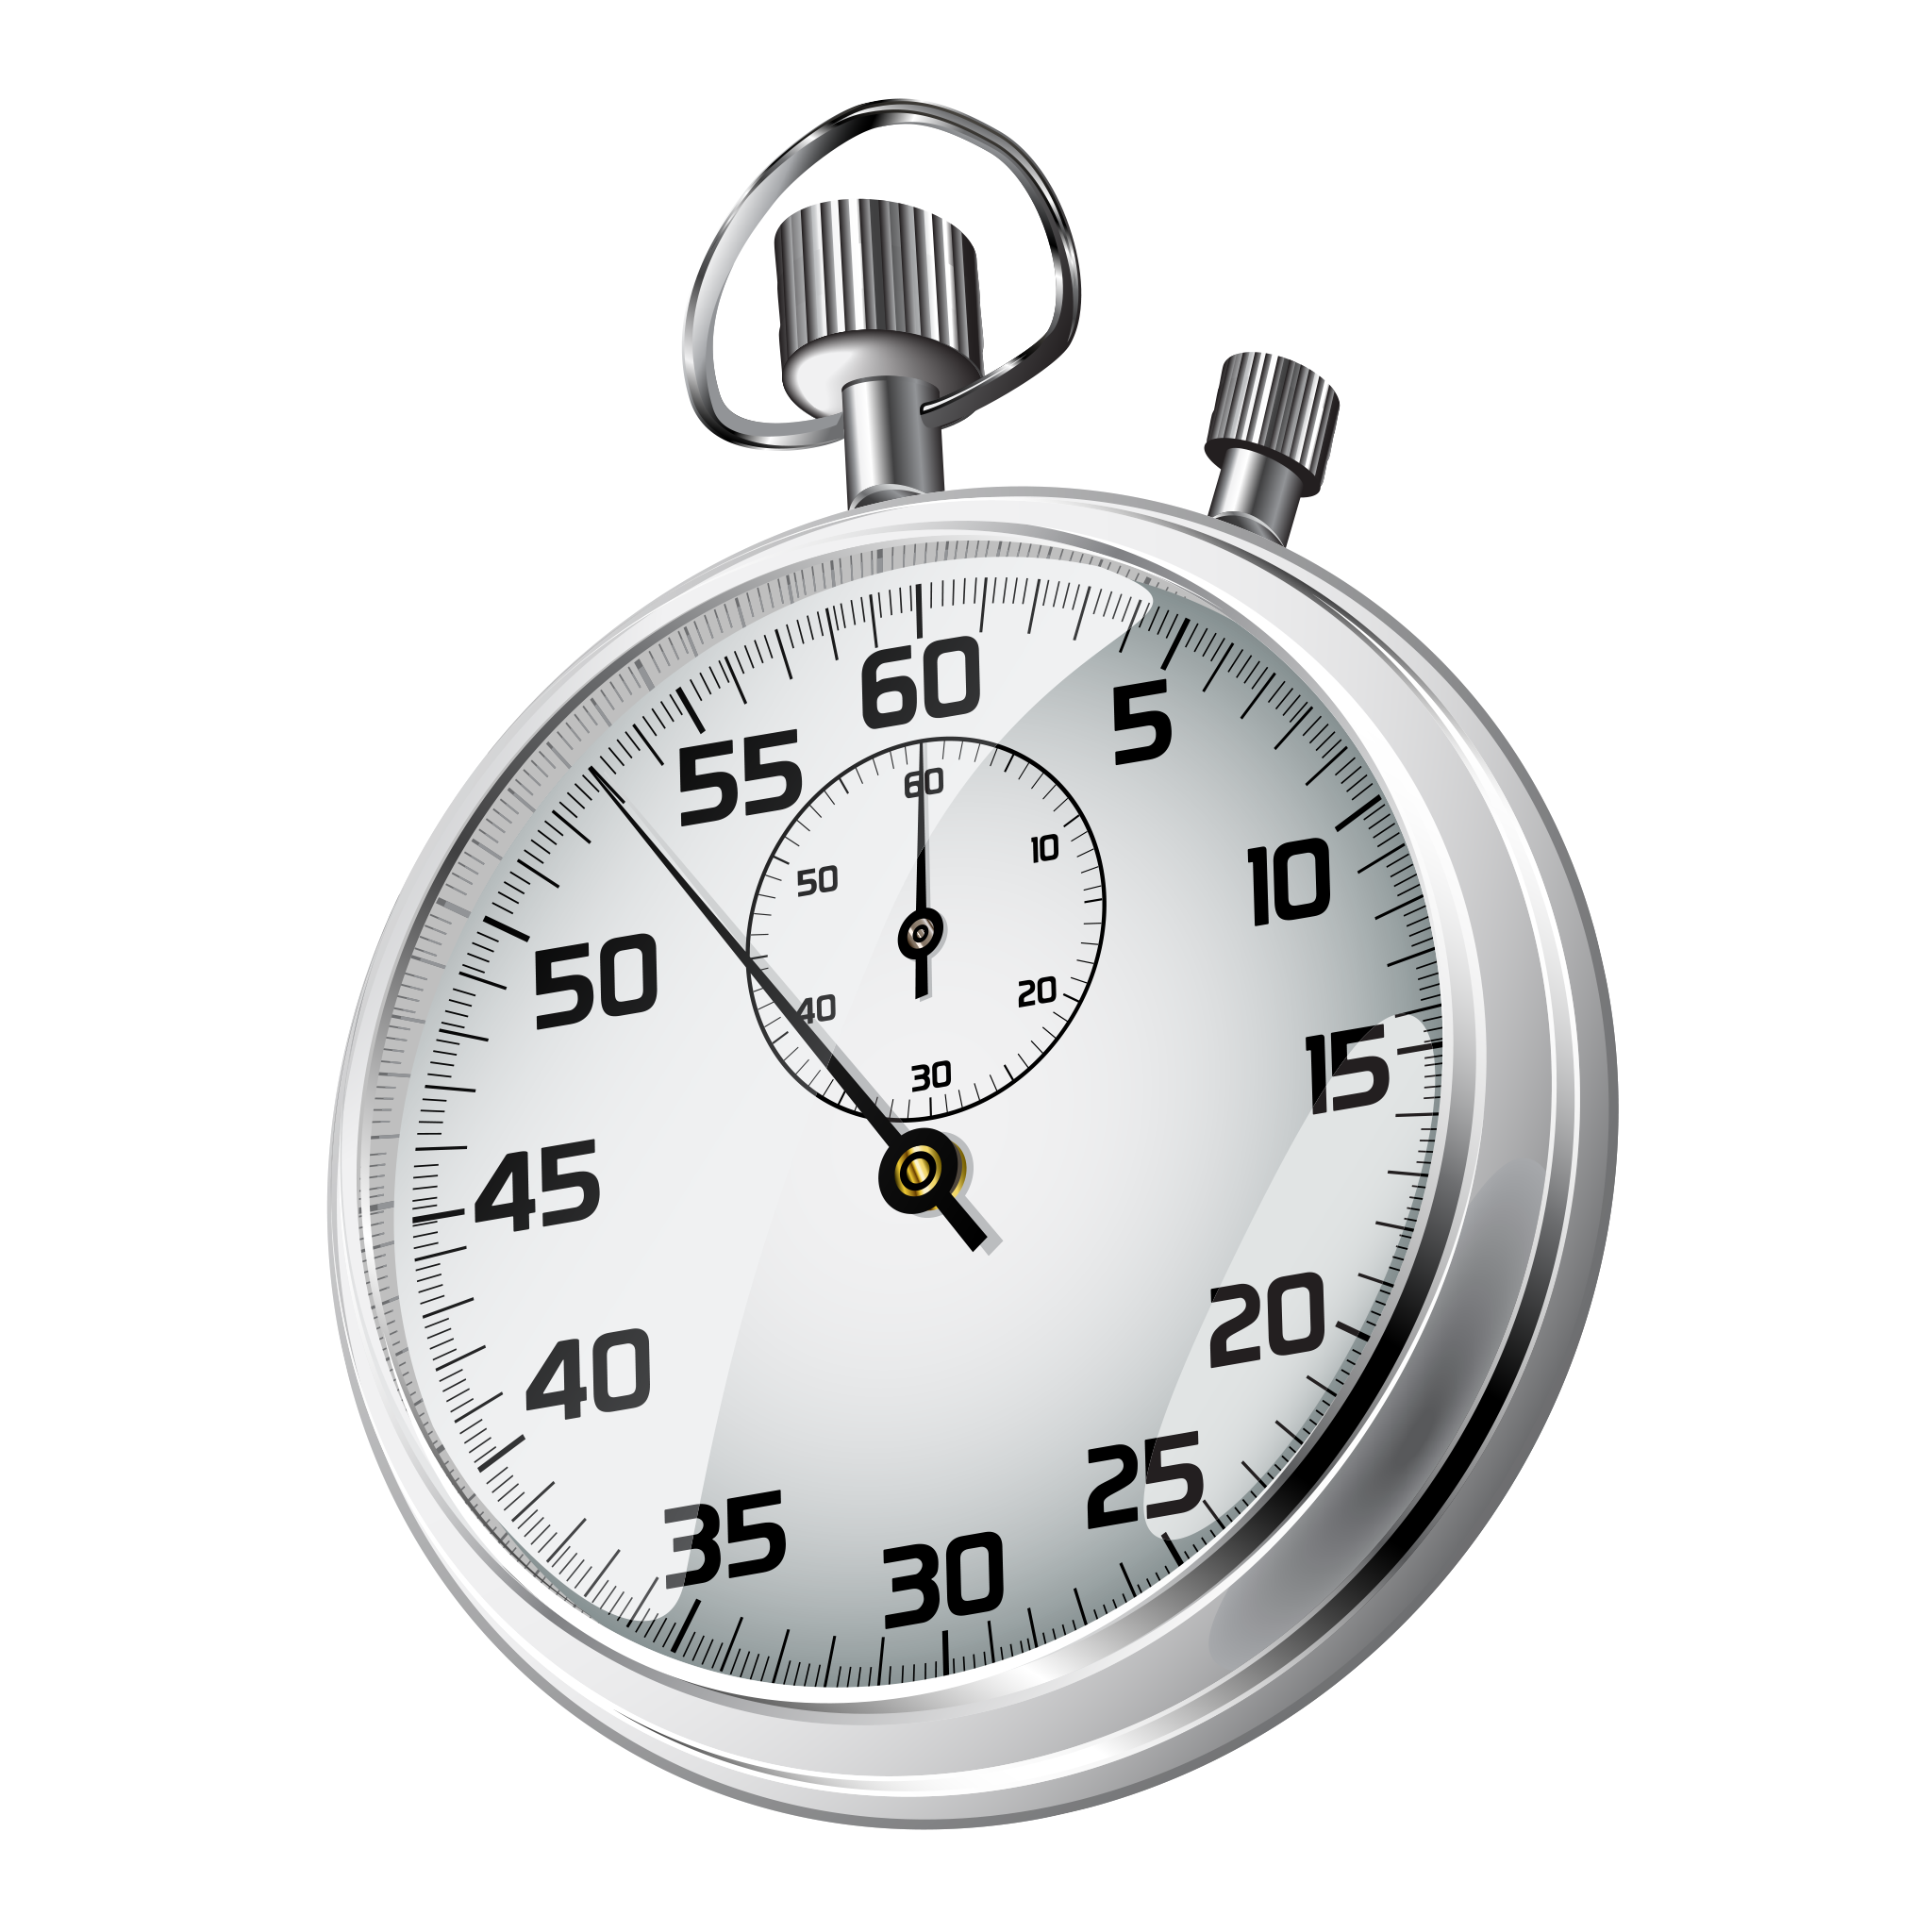 Transparent timer stopwatch. Realistic on background png